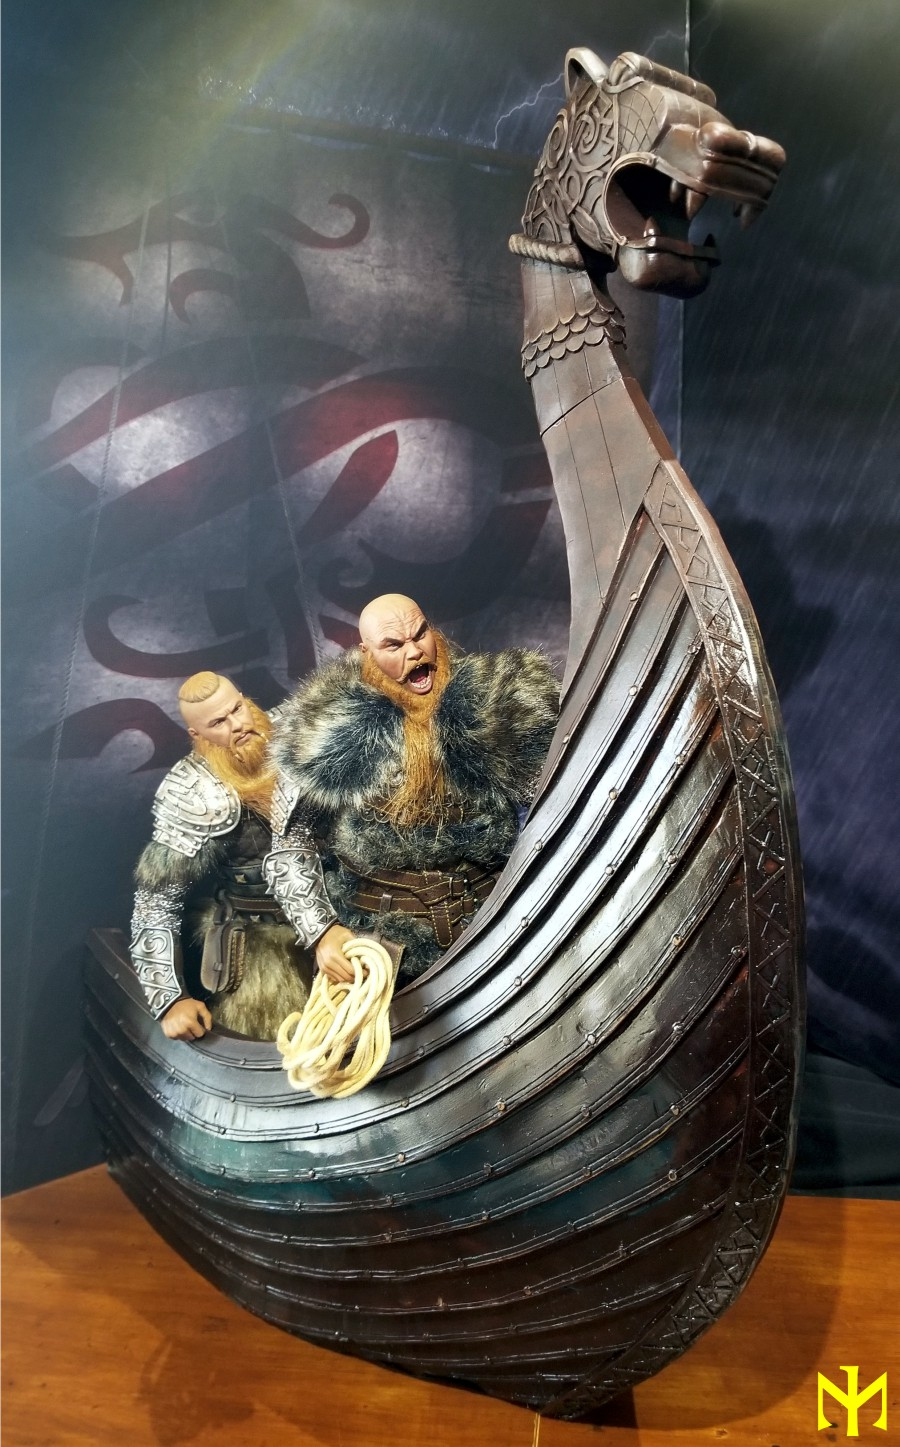 Vikings Vanquisher Viking Ship Diorama Coomodel Review Viking37